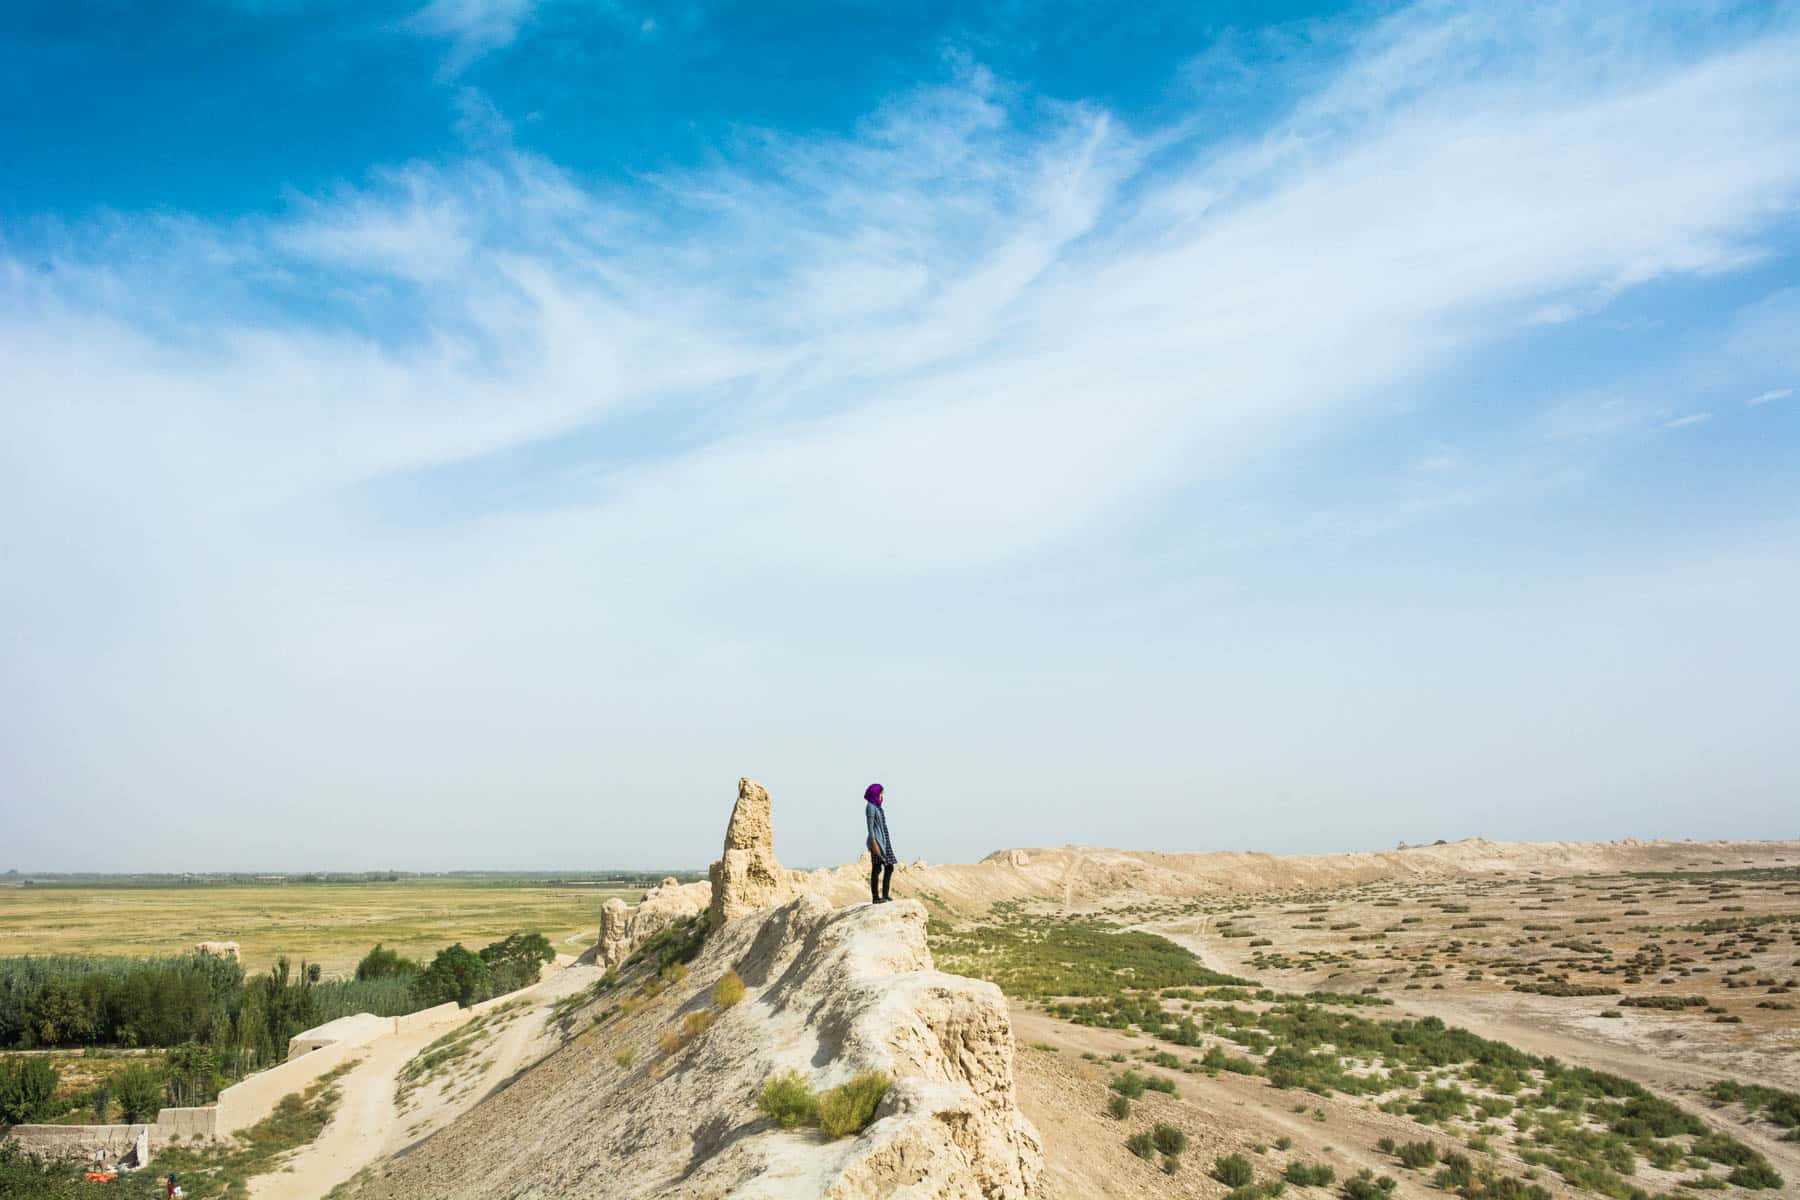 Solo female travel - Alex looking out over Balkh, Afghanistan - Lost With Purpose travel blog